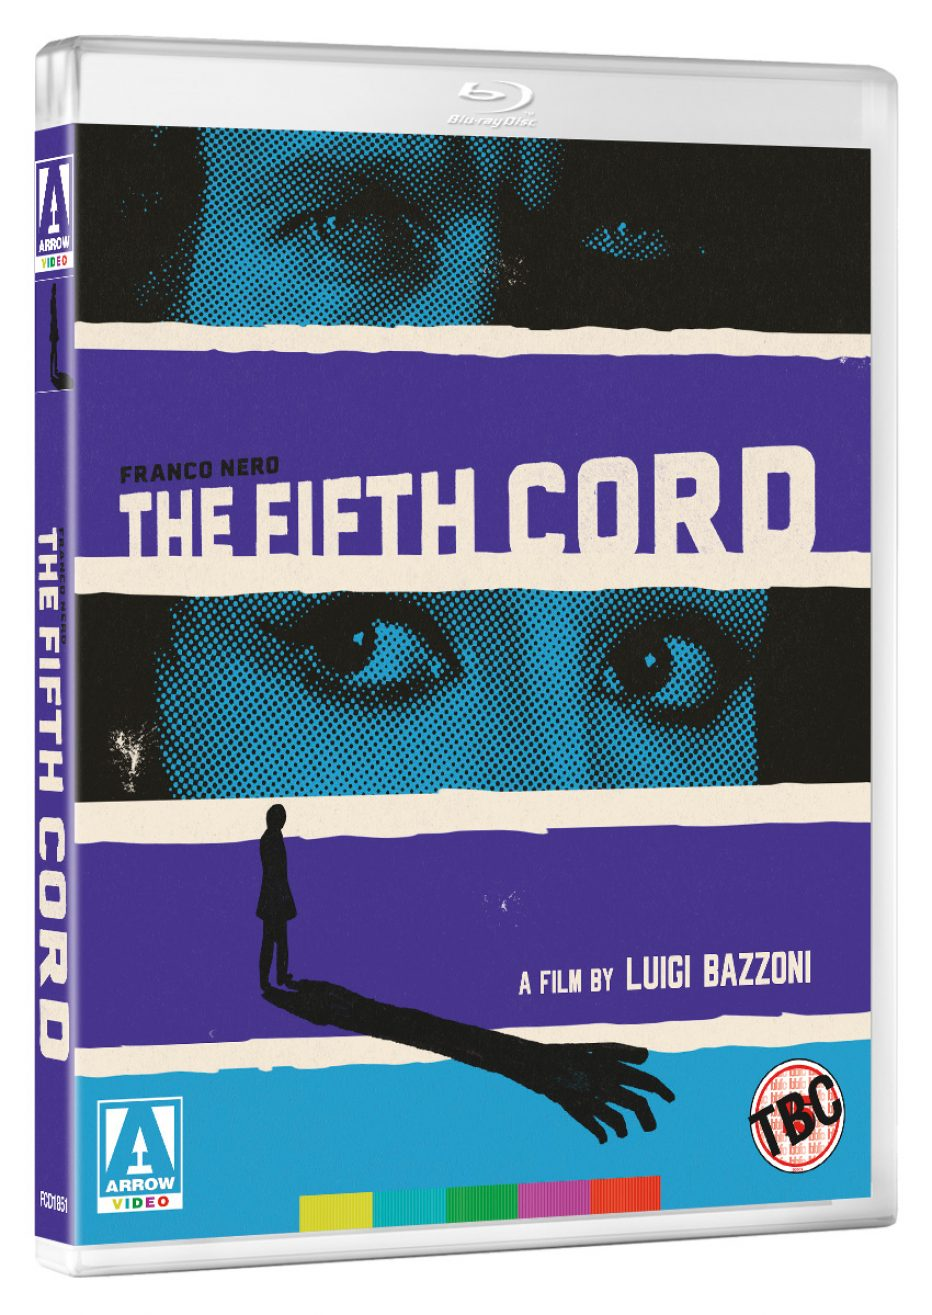 The Fifth Cord Out on Blu-Ray 4th February 2019